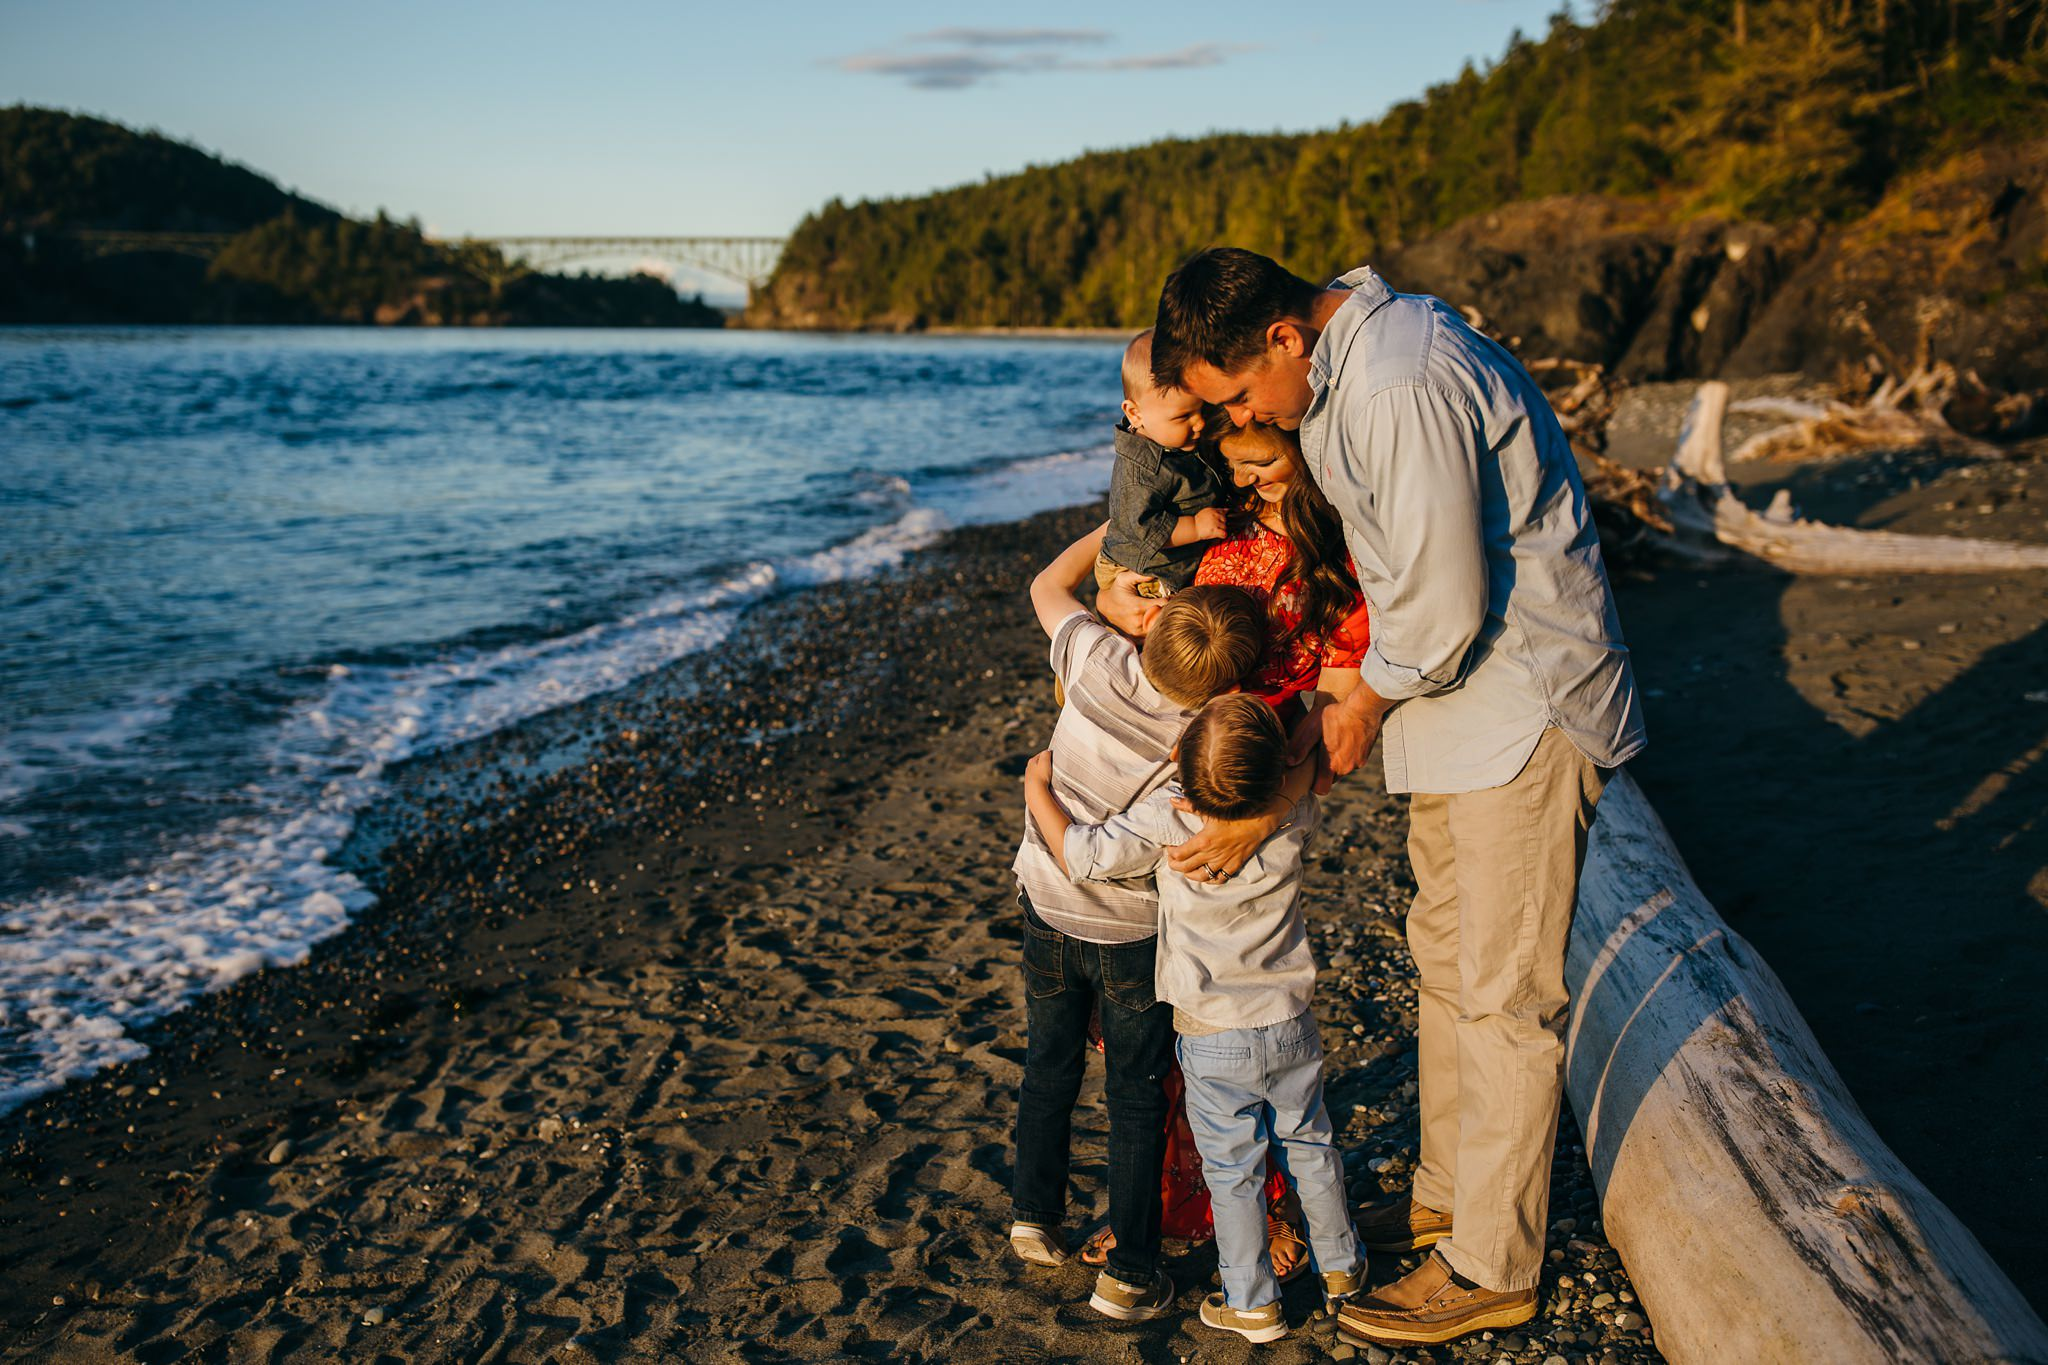 Family hugs on beach with Deception Pass bridge in background